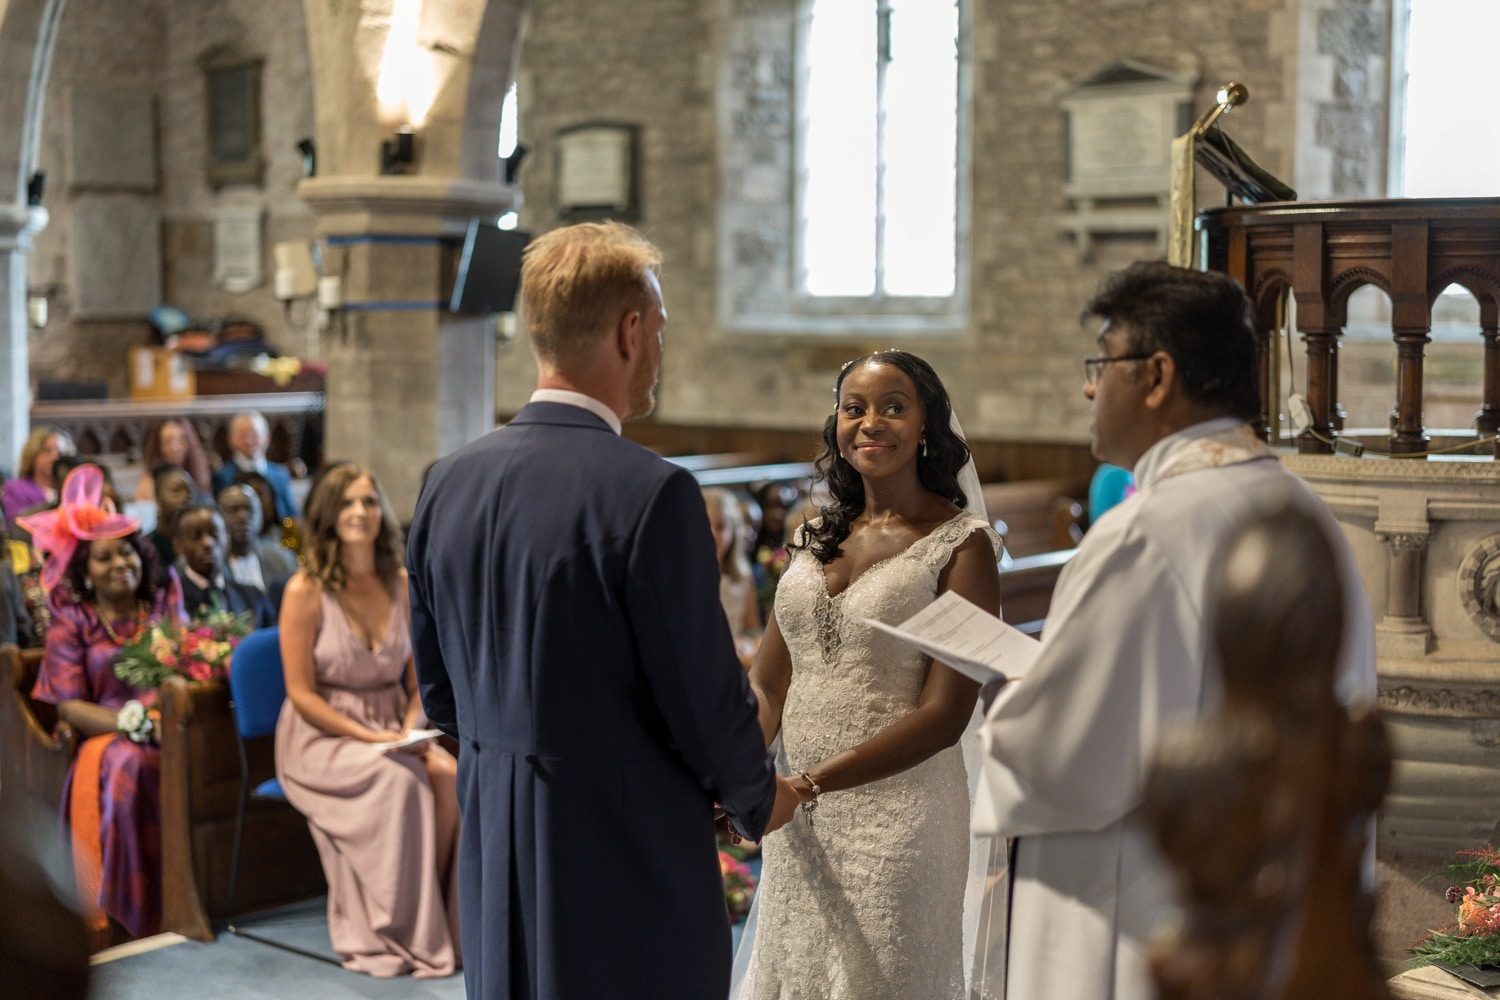 Marriage ceremony at St Edmund's Church in Crickhowell, South Wales